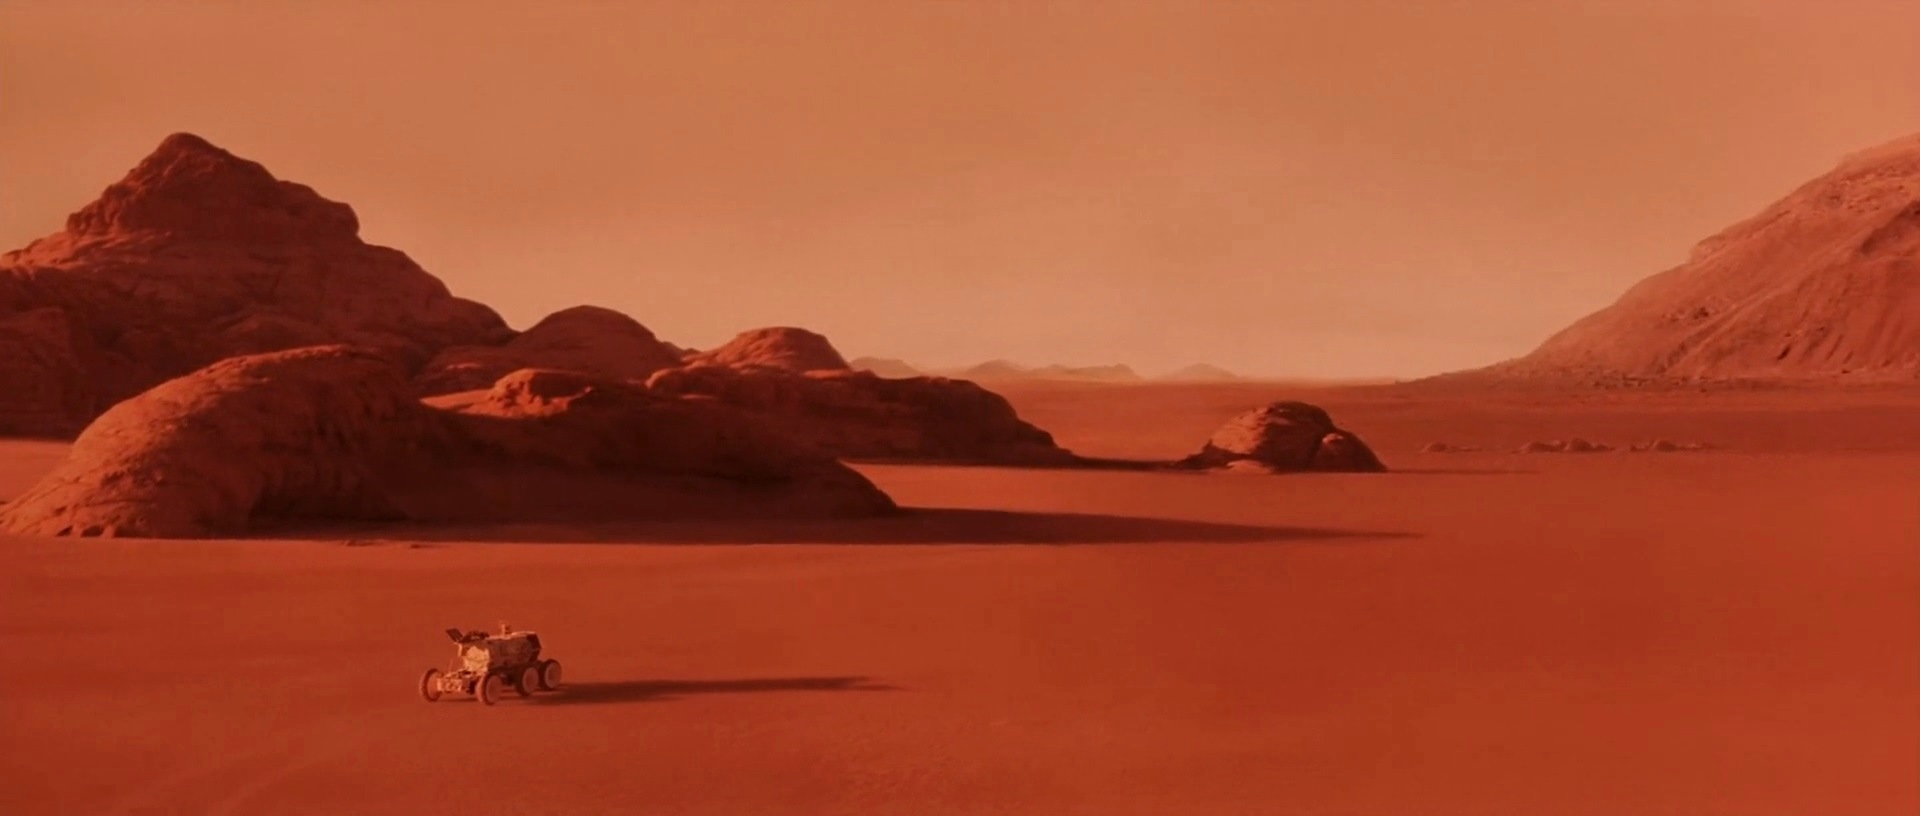 human Mars HD images from Mission to Mars 2000 movie